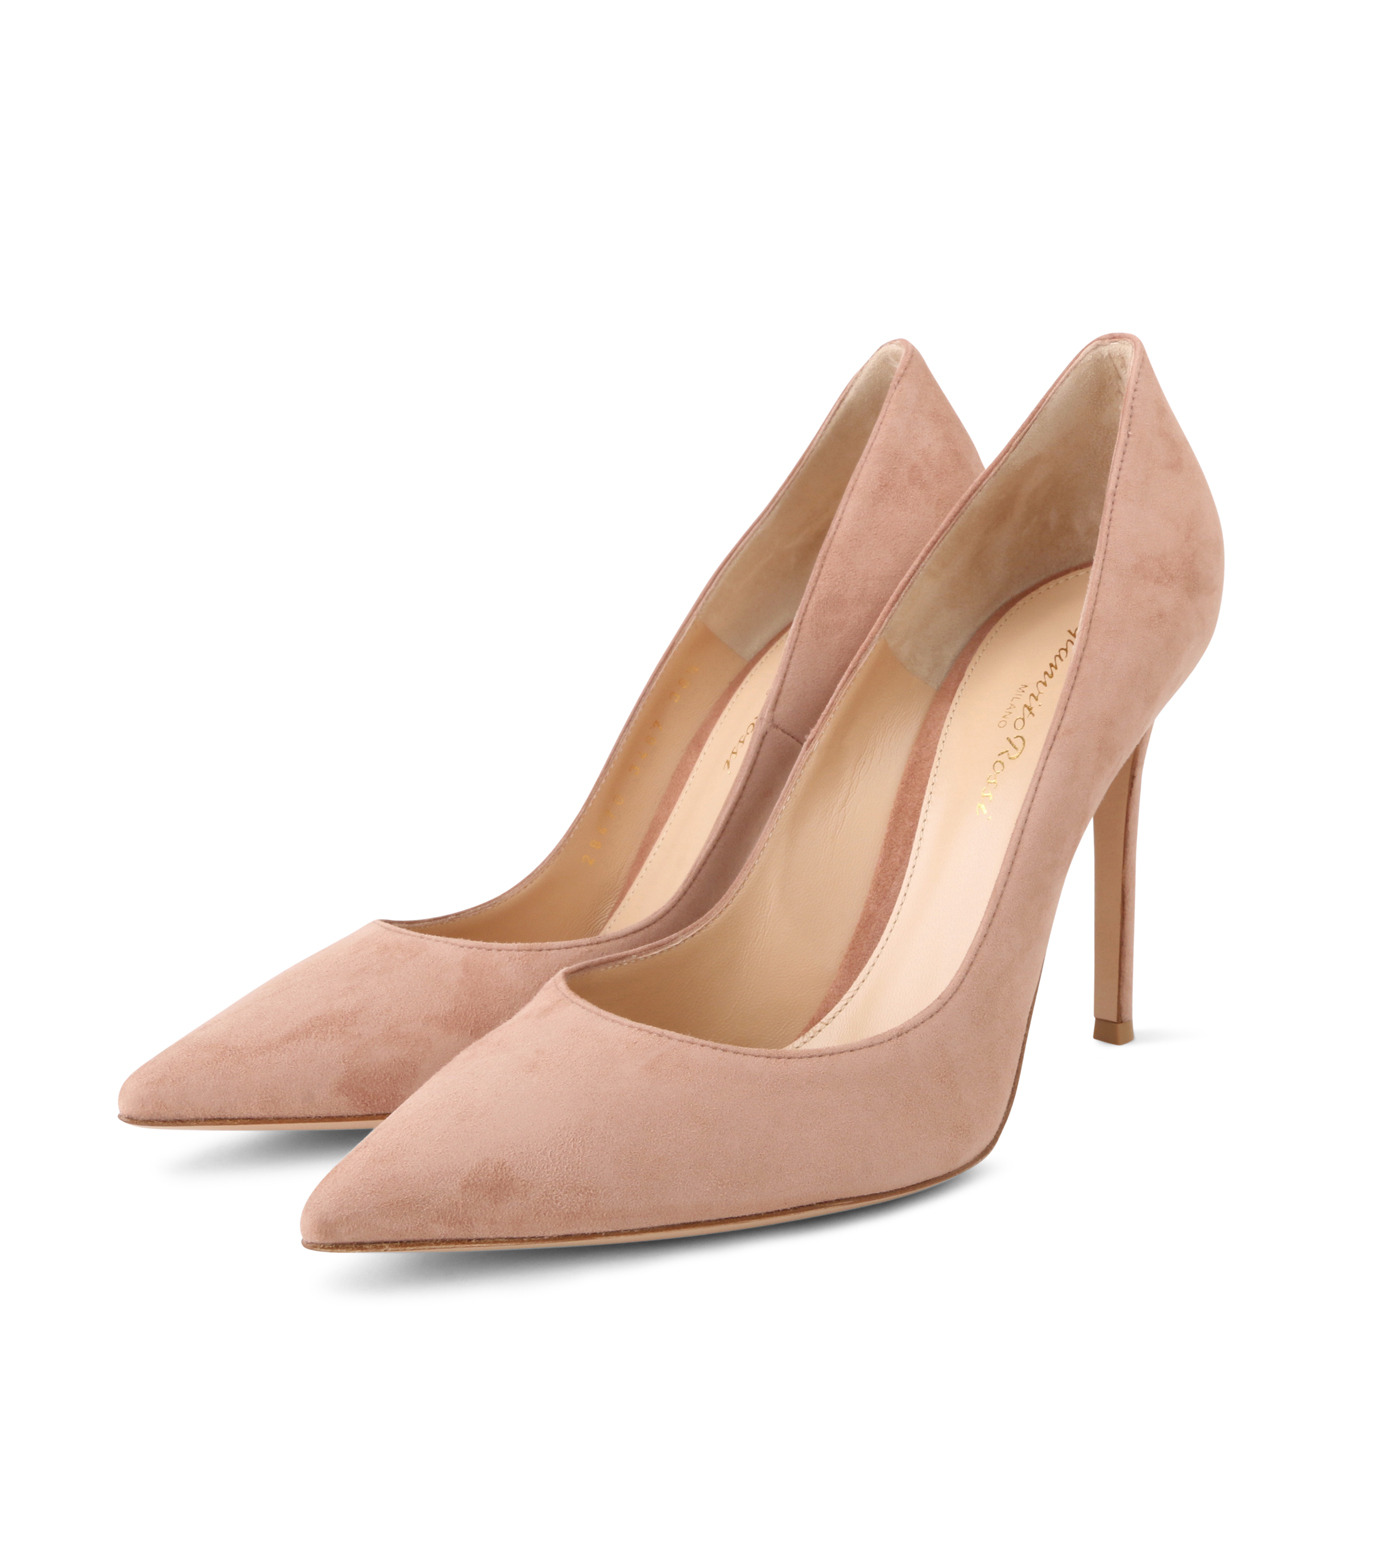 Gianvito Rossi(ジャンヴィト ロッシ)のSuede Pump-LIGHT BEIGE(パンプス/pumps)-G28470-51 拡大詳細画像3